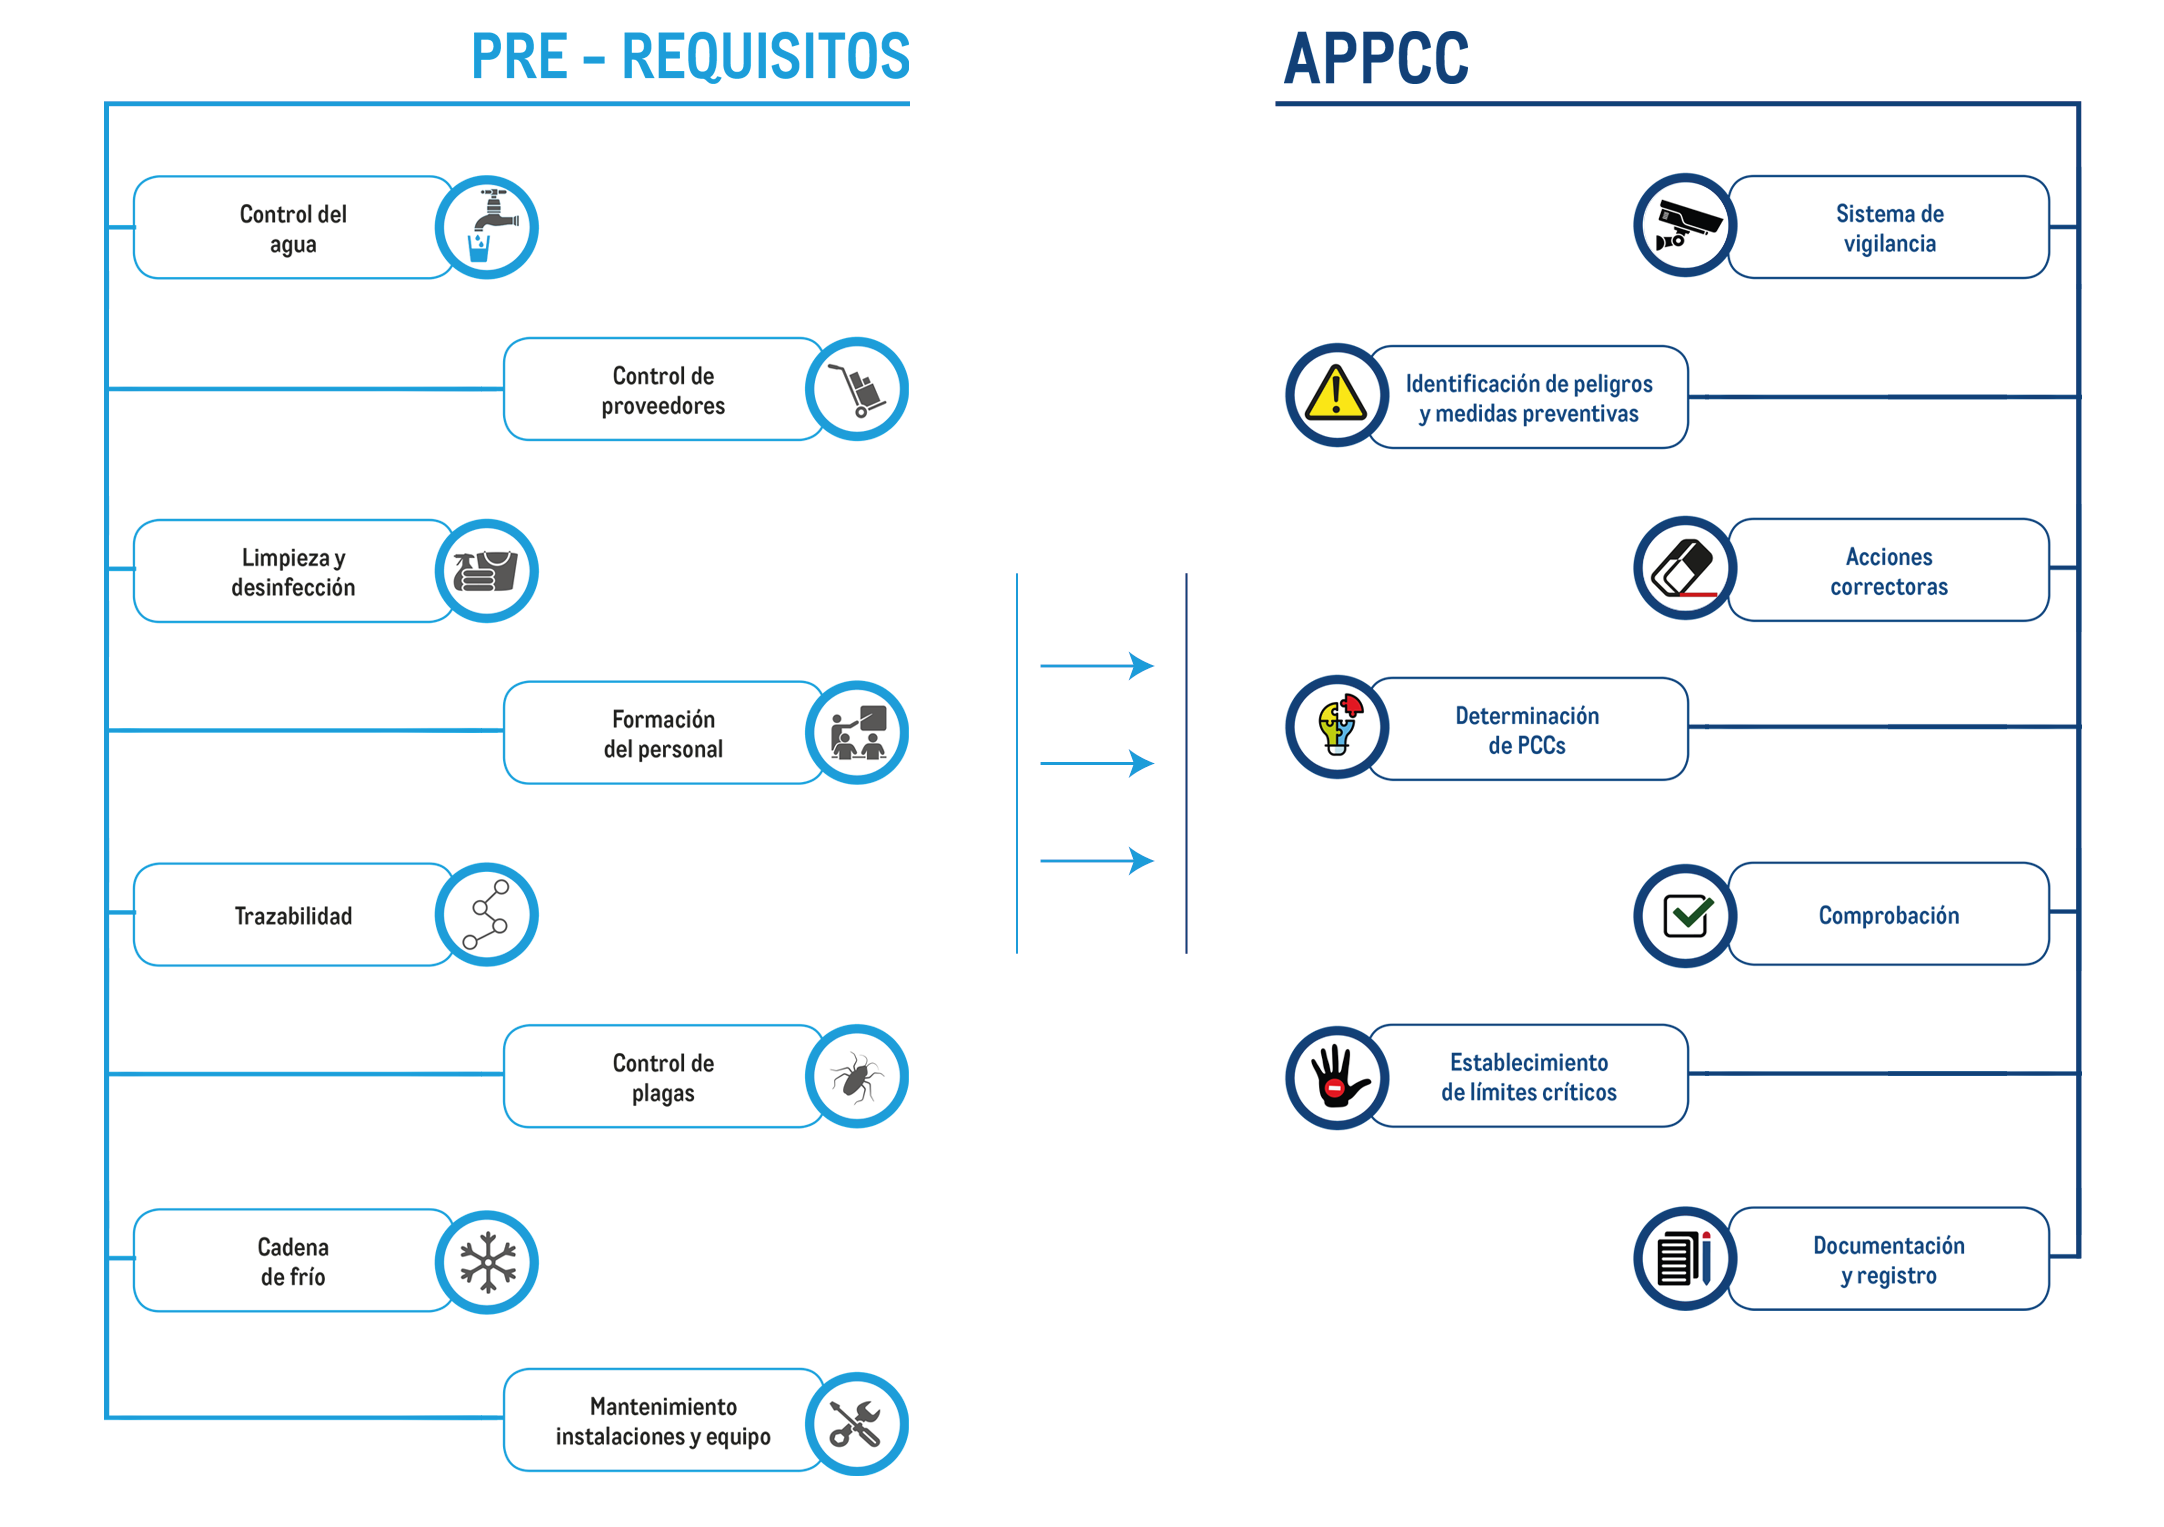 Requisitos de APPCC